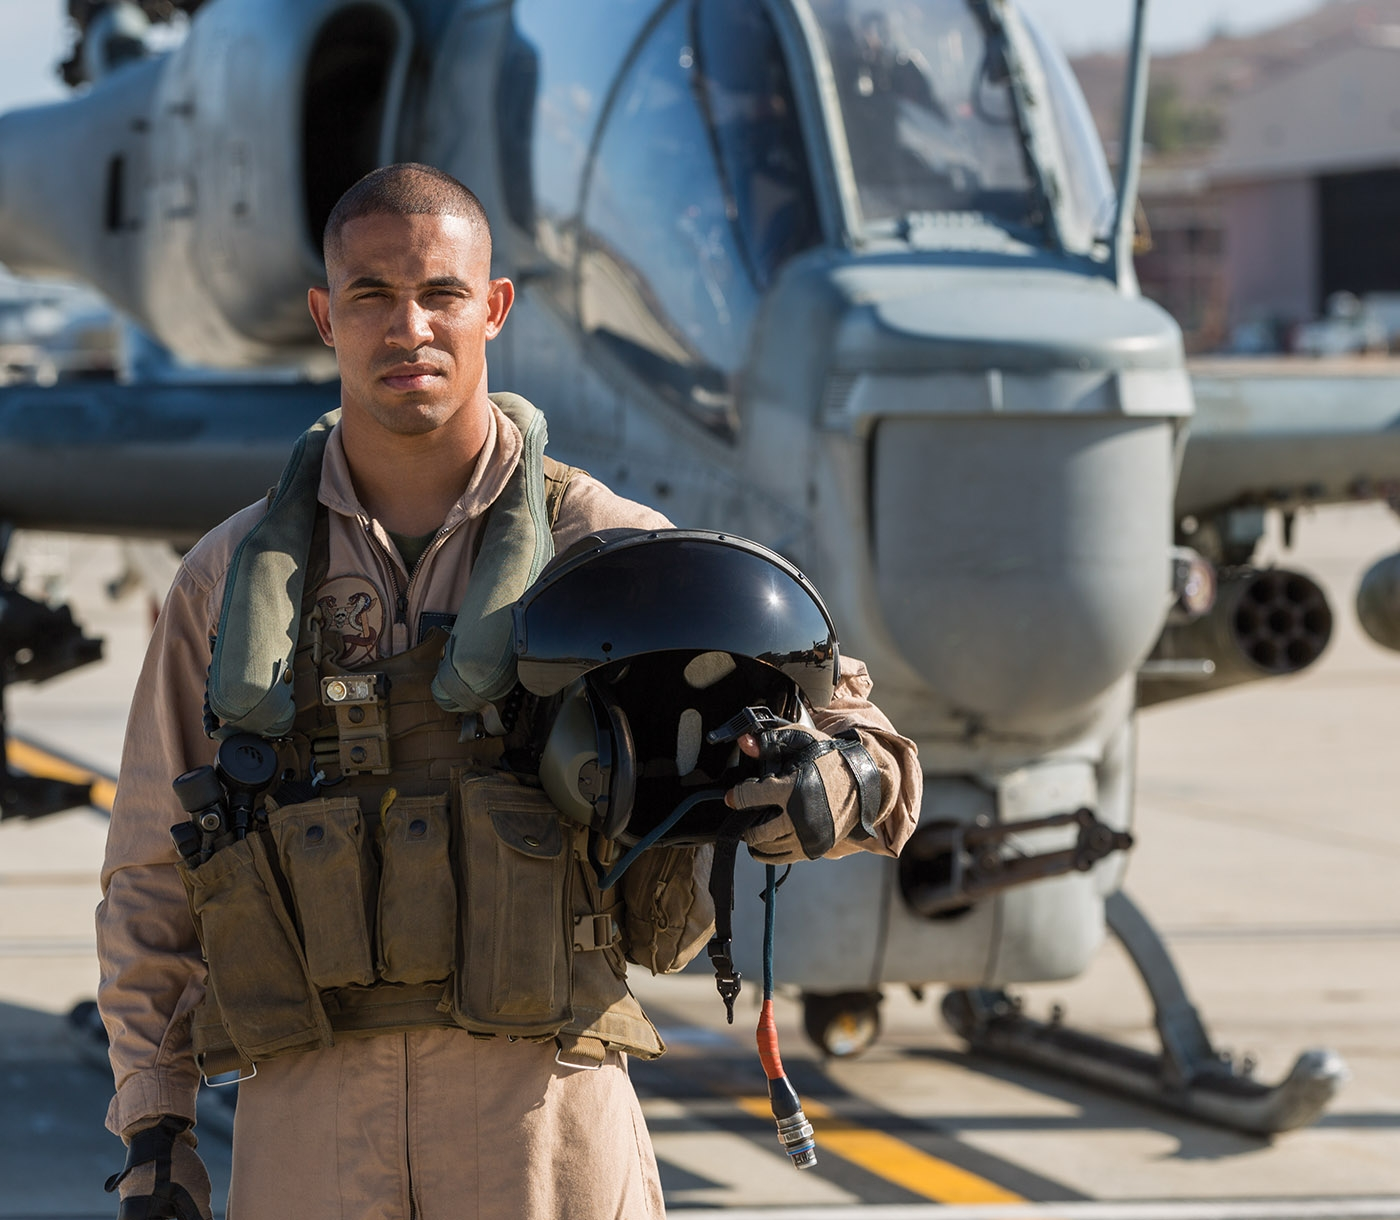 A Marine pilot stands, helmet in hand, in front of a helicopter.